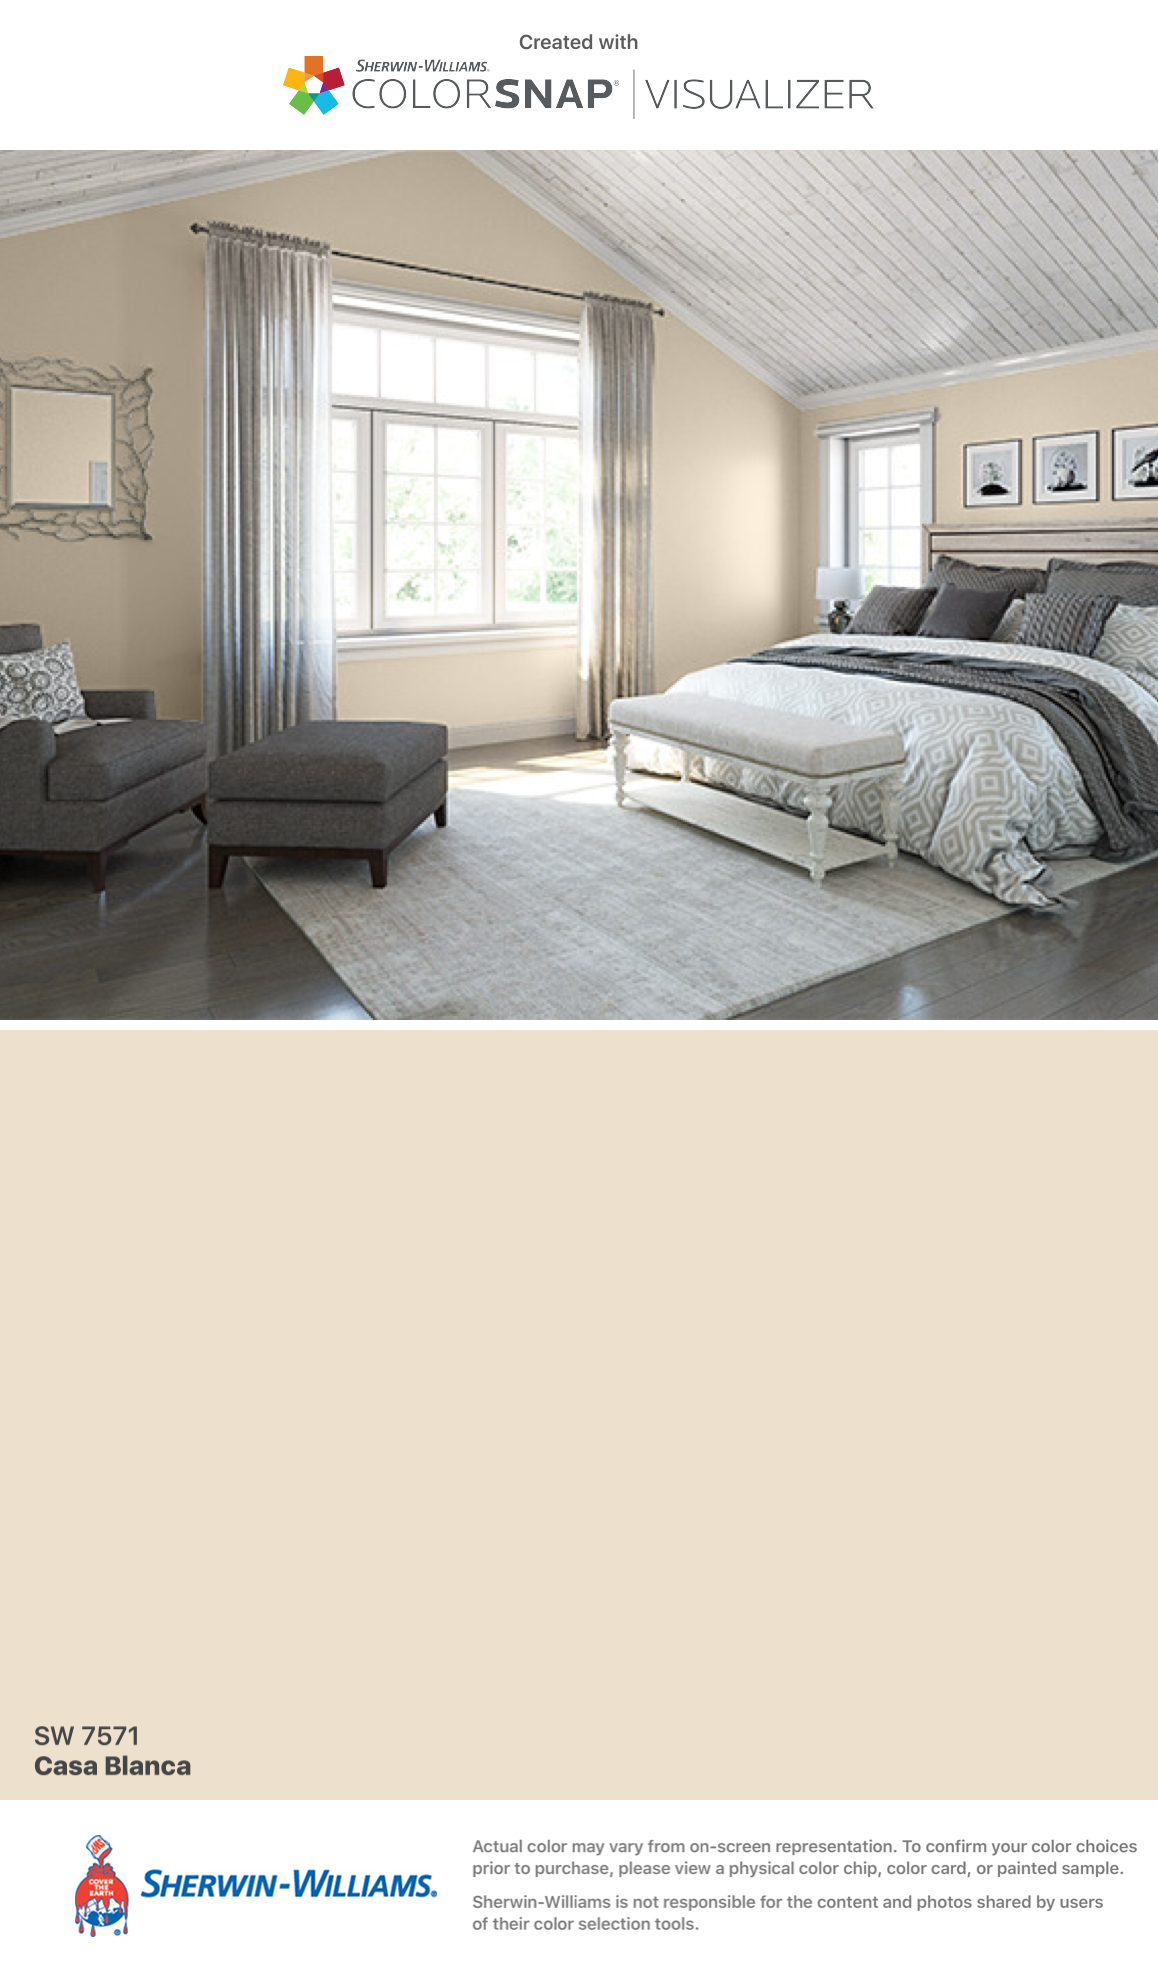 Paint Color For All Interior Trim: Sherwin Williams: Casa Blanca (SW 7571).